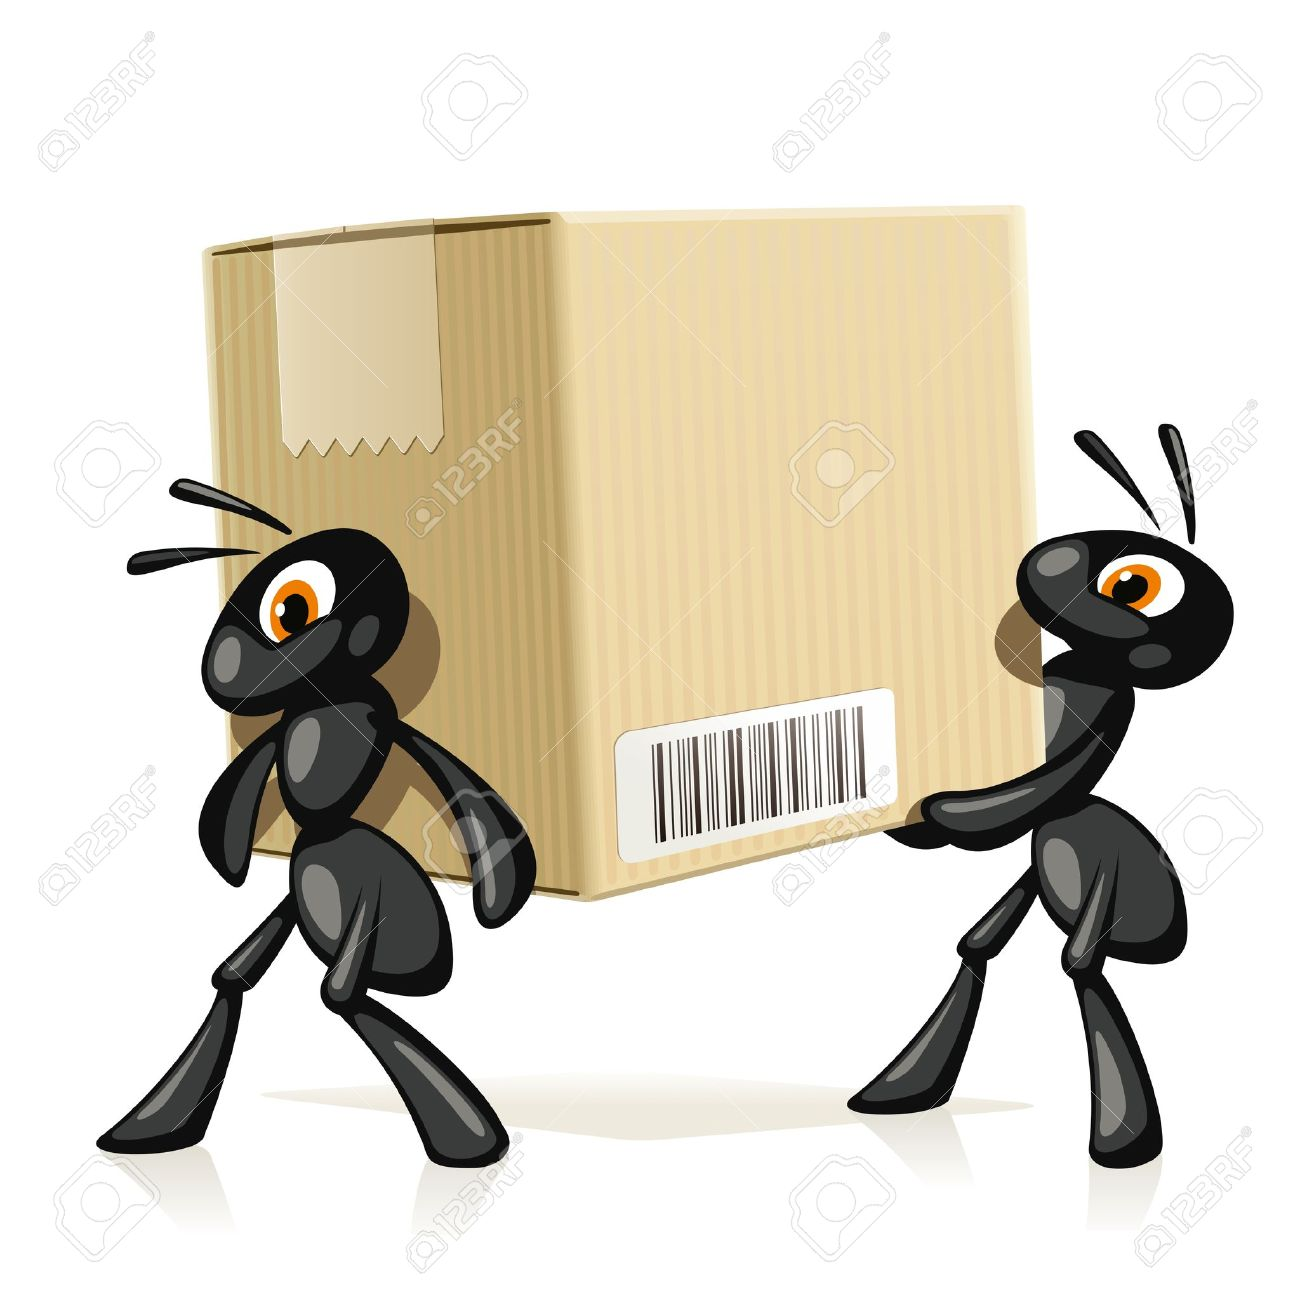 Ants Delivery Two black ants carry a large cardboard box with barcode - 24253822